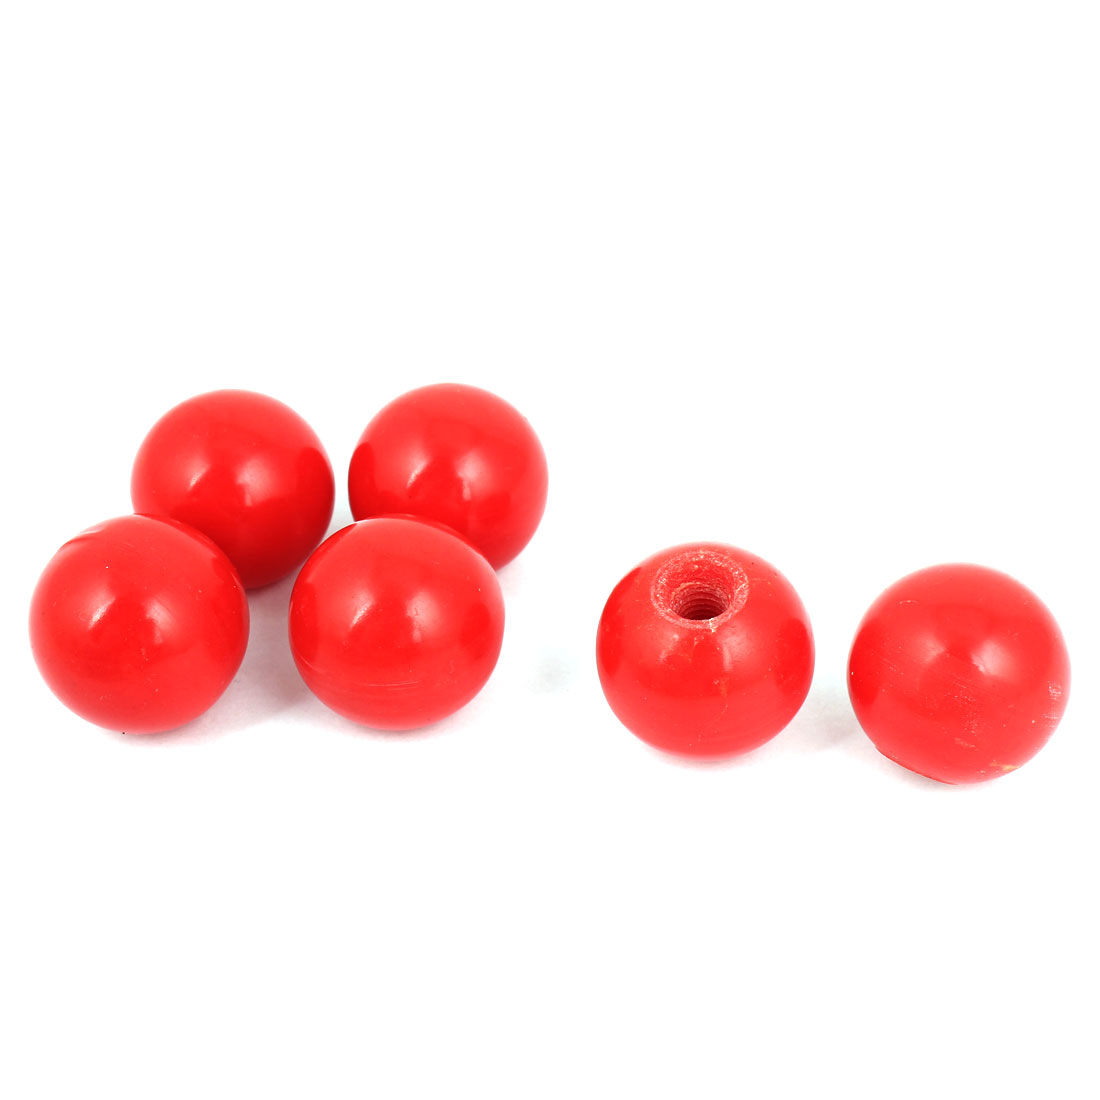 6 Pcs M6 Female Threaded 25mm Diameter Plastic Ball Knob Handle Red